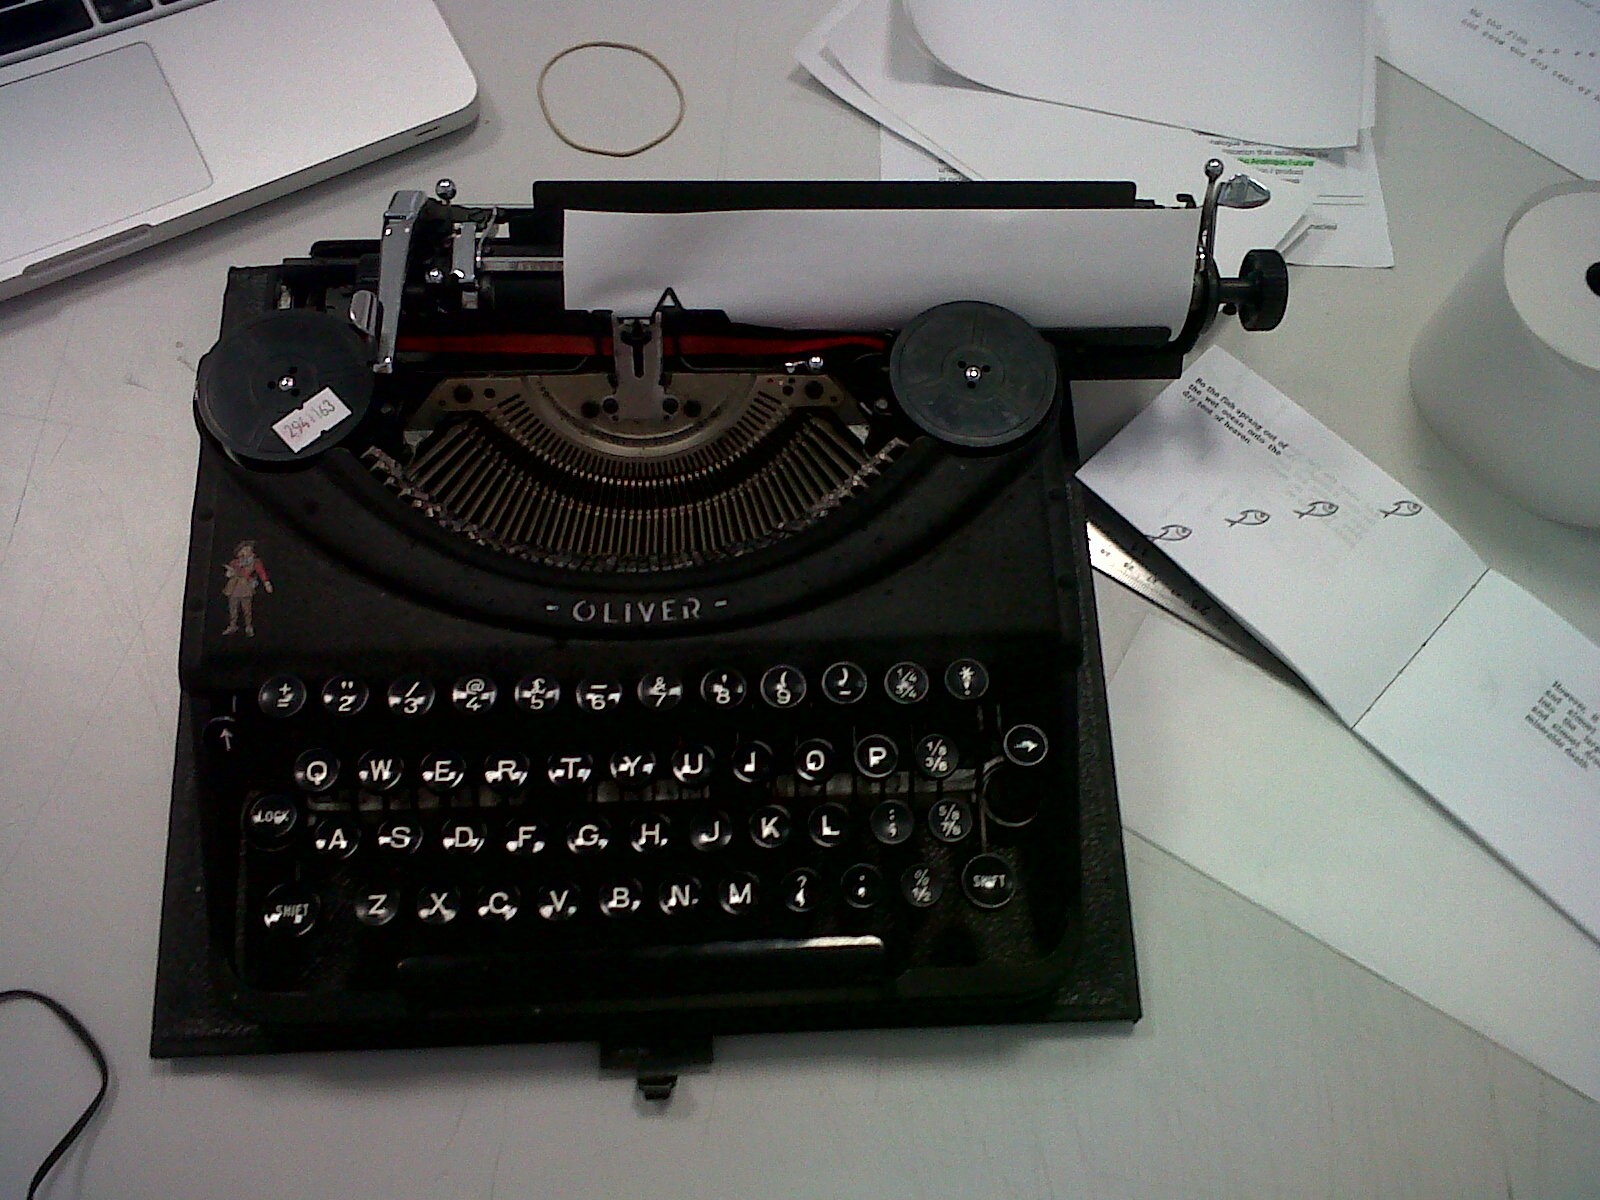 typewriters vs computers Posts about typewriters vs computers written by larry gross.